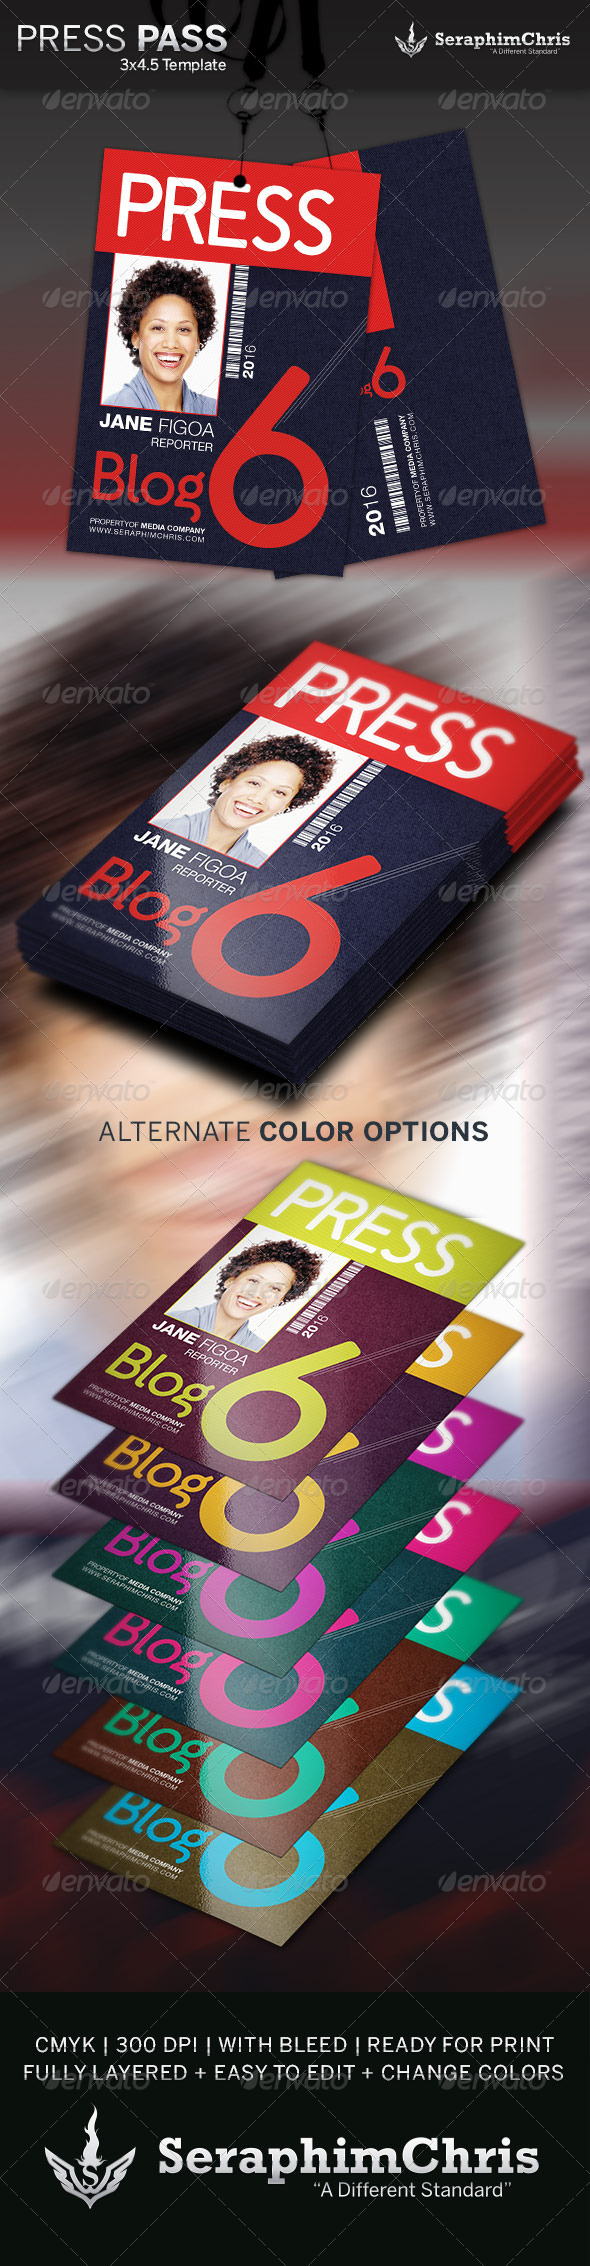 GraphicRiver Press Pass Template 2 4282256